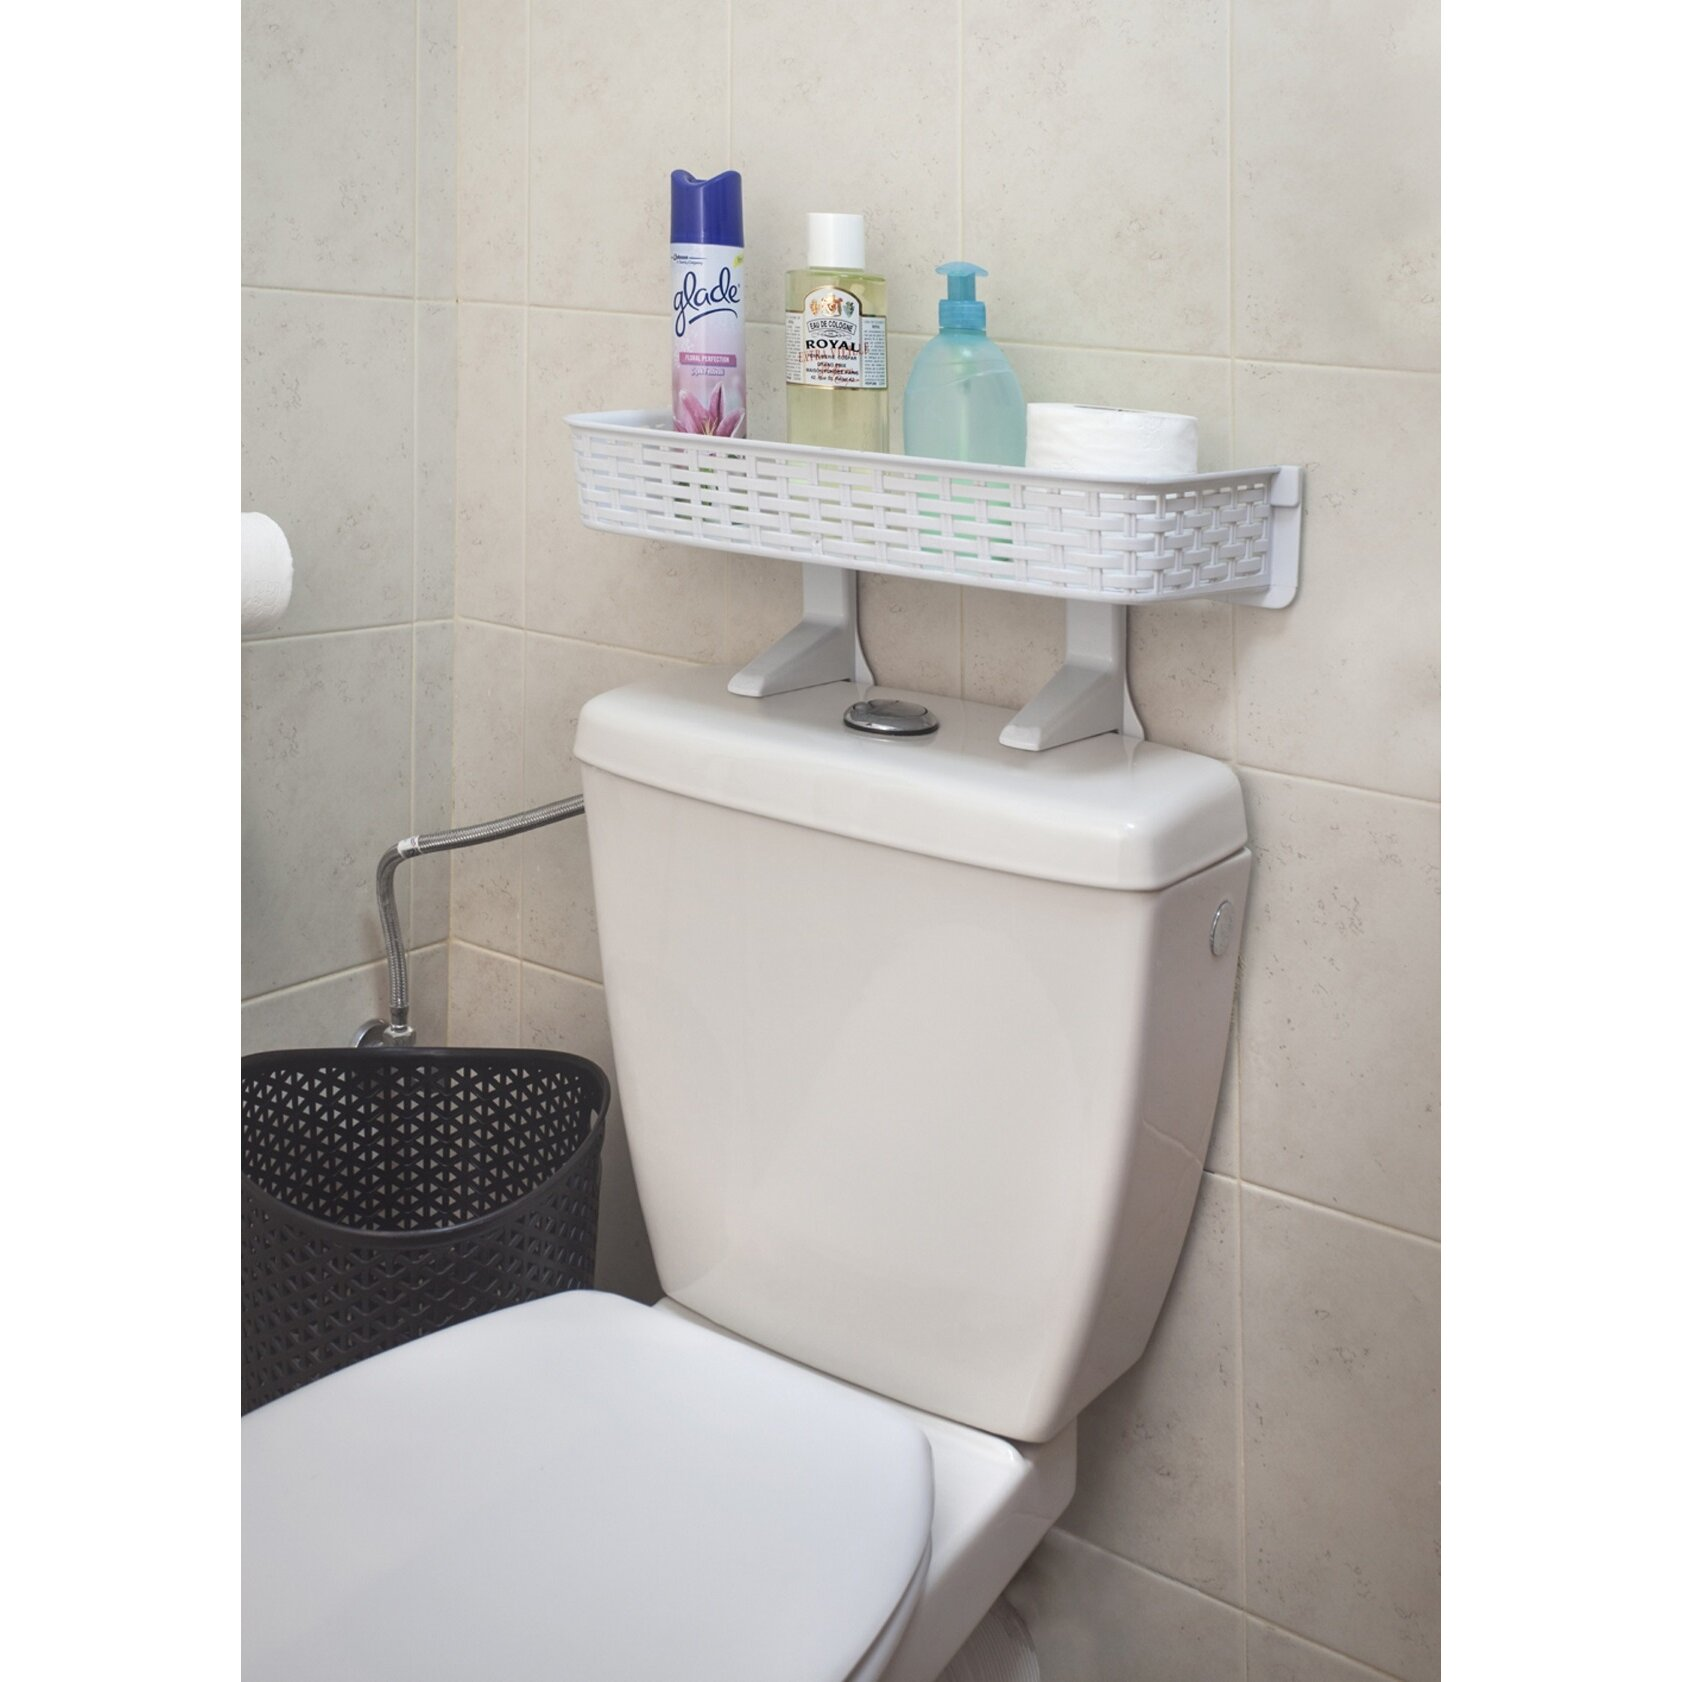 Ybm home 7 8 x 11 8 wall mounted shelf wayfair for Bathroom over the toilet shelf